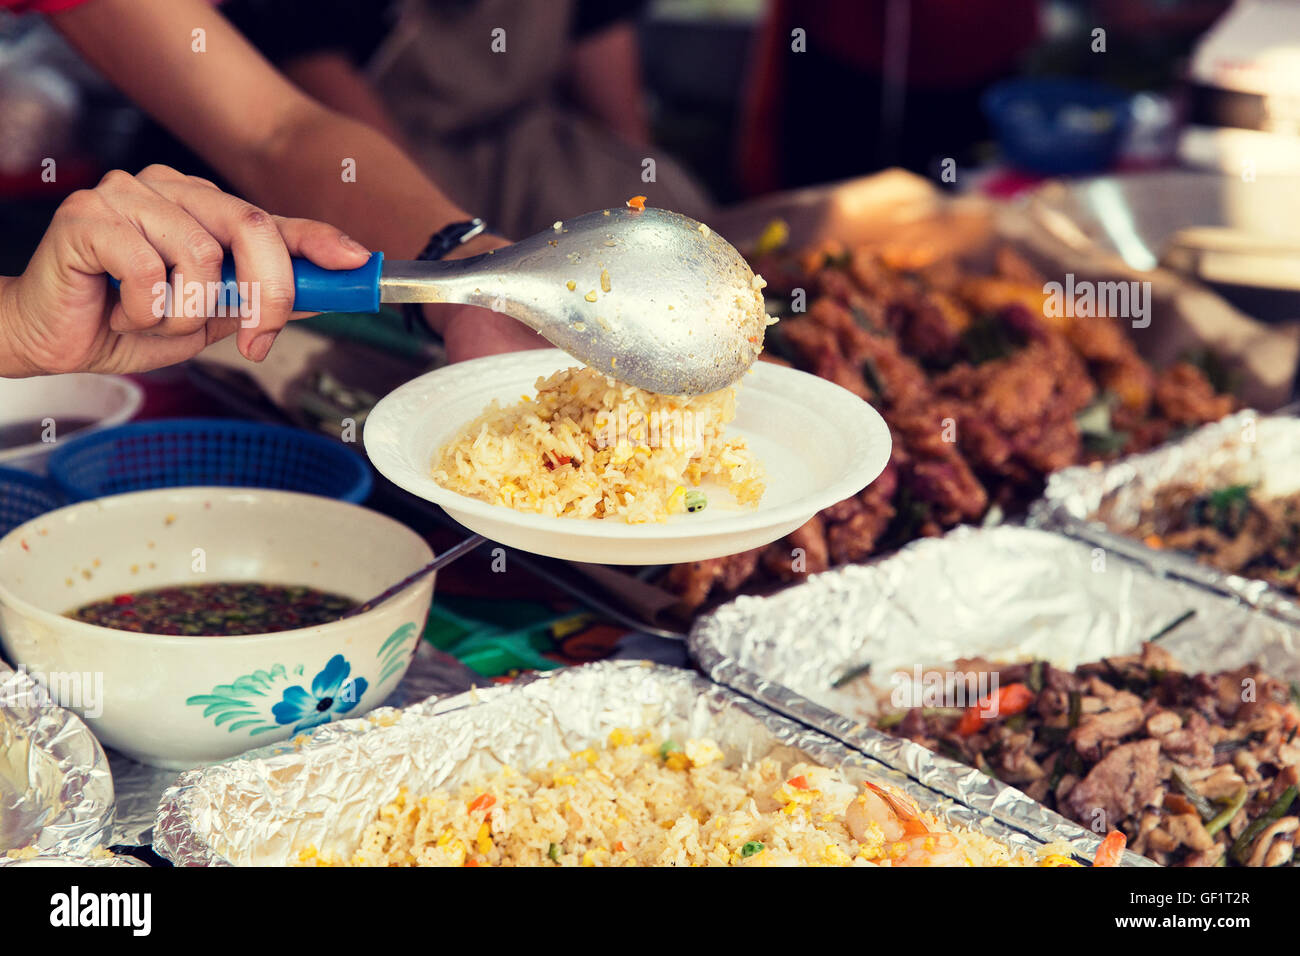 close up of hands with wok at street market - Stock Image